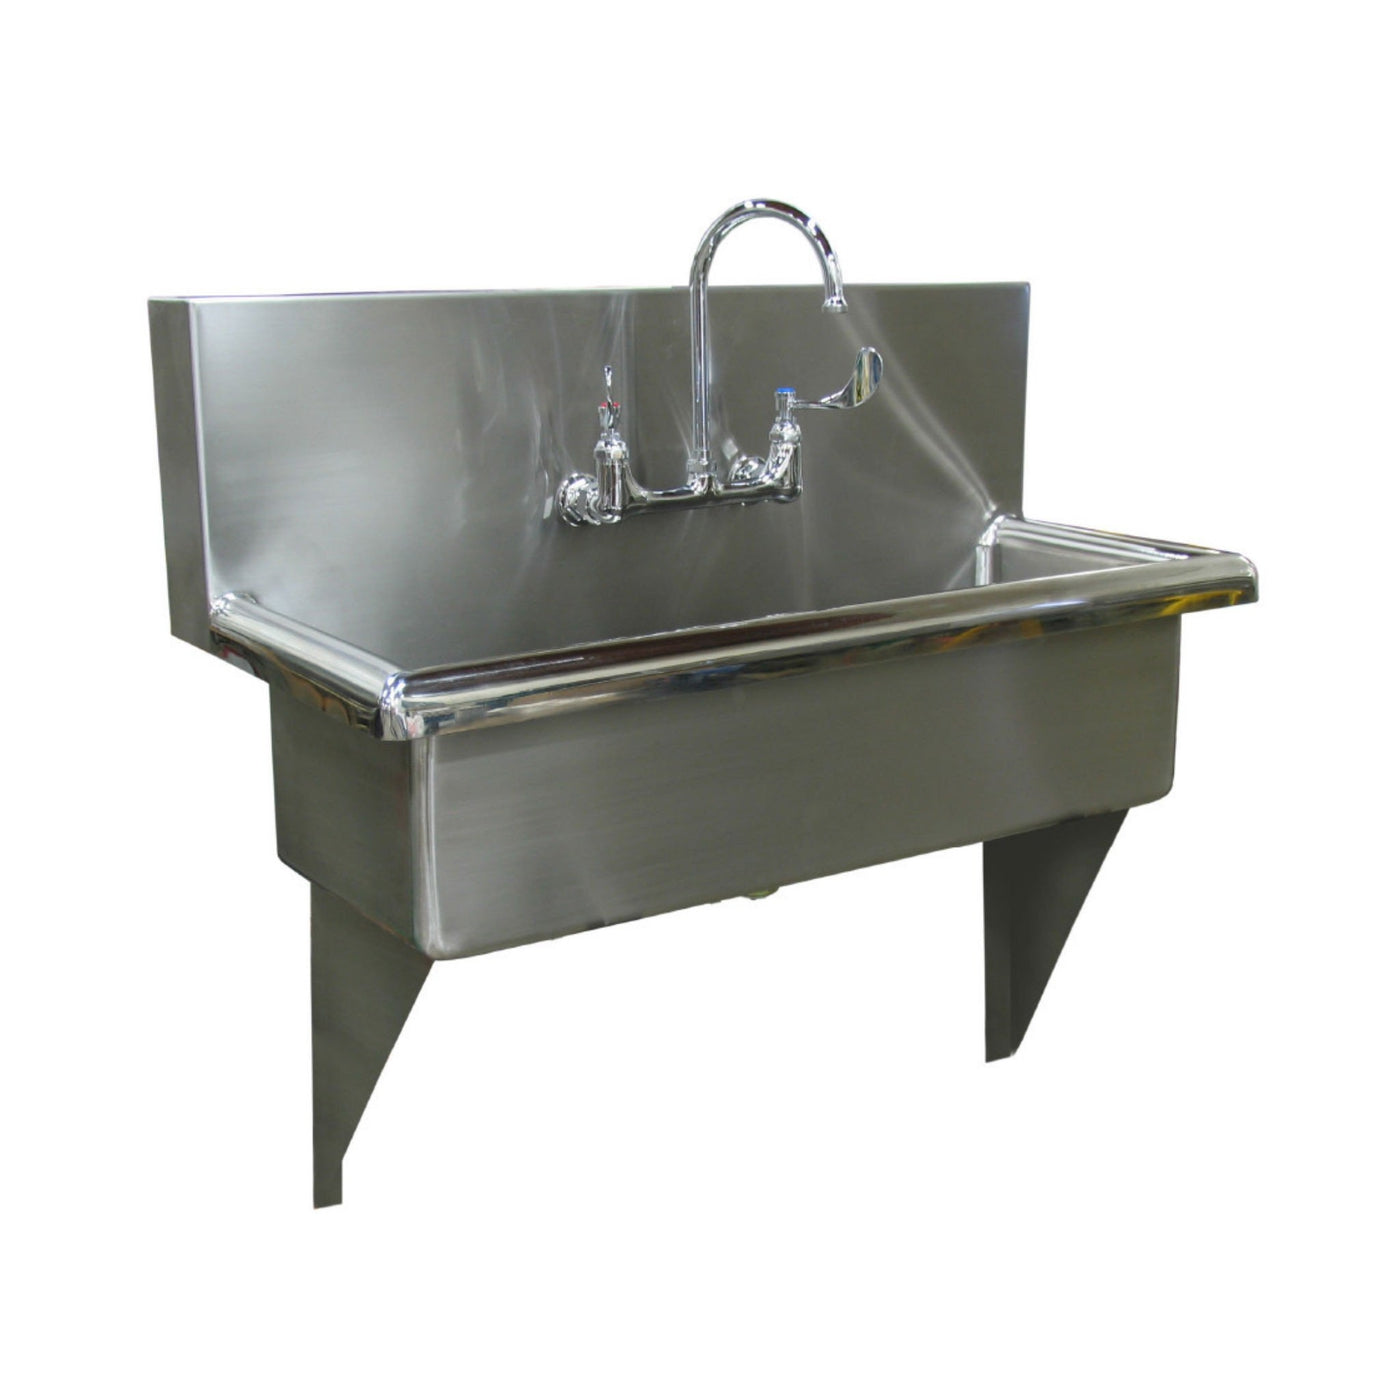 Economy Wash Station-Sink Station-Mortech Manufacturing Company Inc. Quality Stainless Steel Autopsy, Morgue, Funeral Home, Necropsy, Veterinary / Anatomy, Dissection Equipment and Accessories